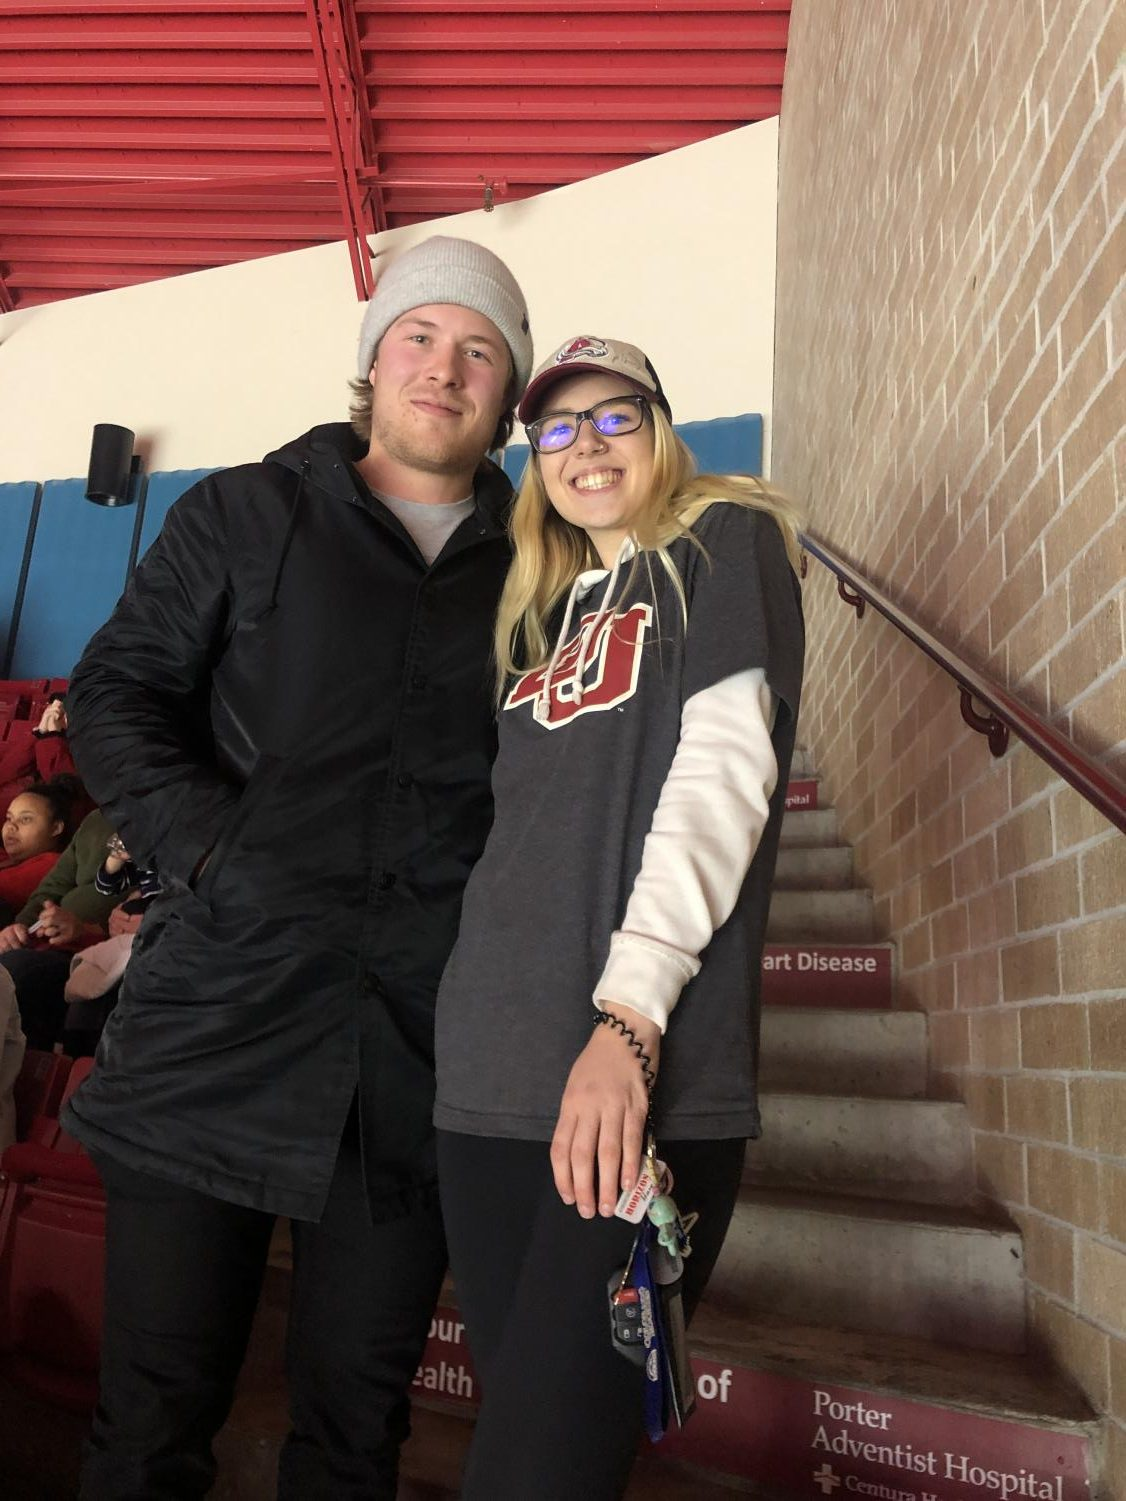 Peyton East with Brock Boeser, University of North Dakota Alumni who currently plays in the NHL